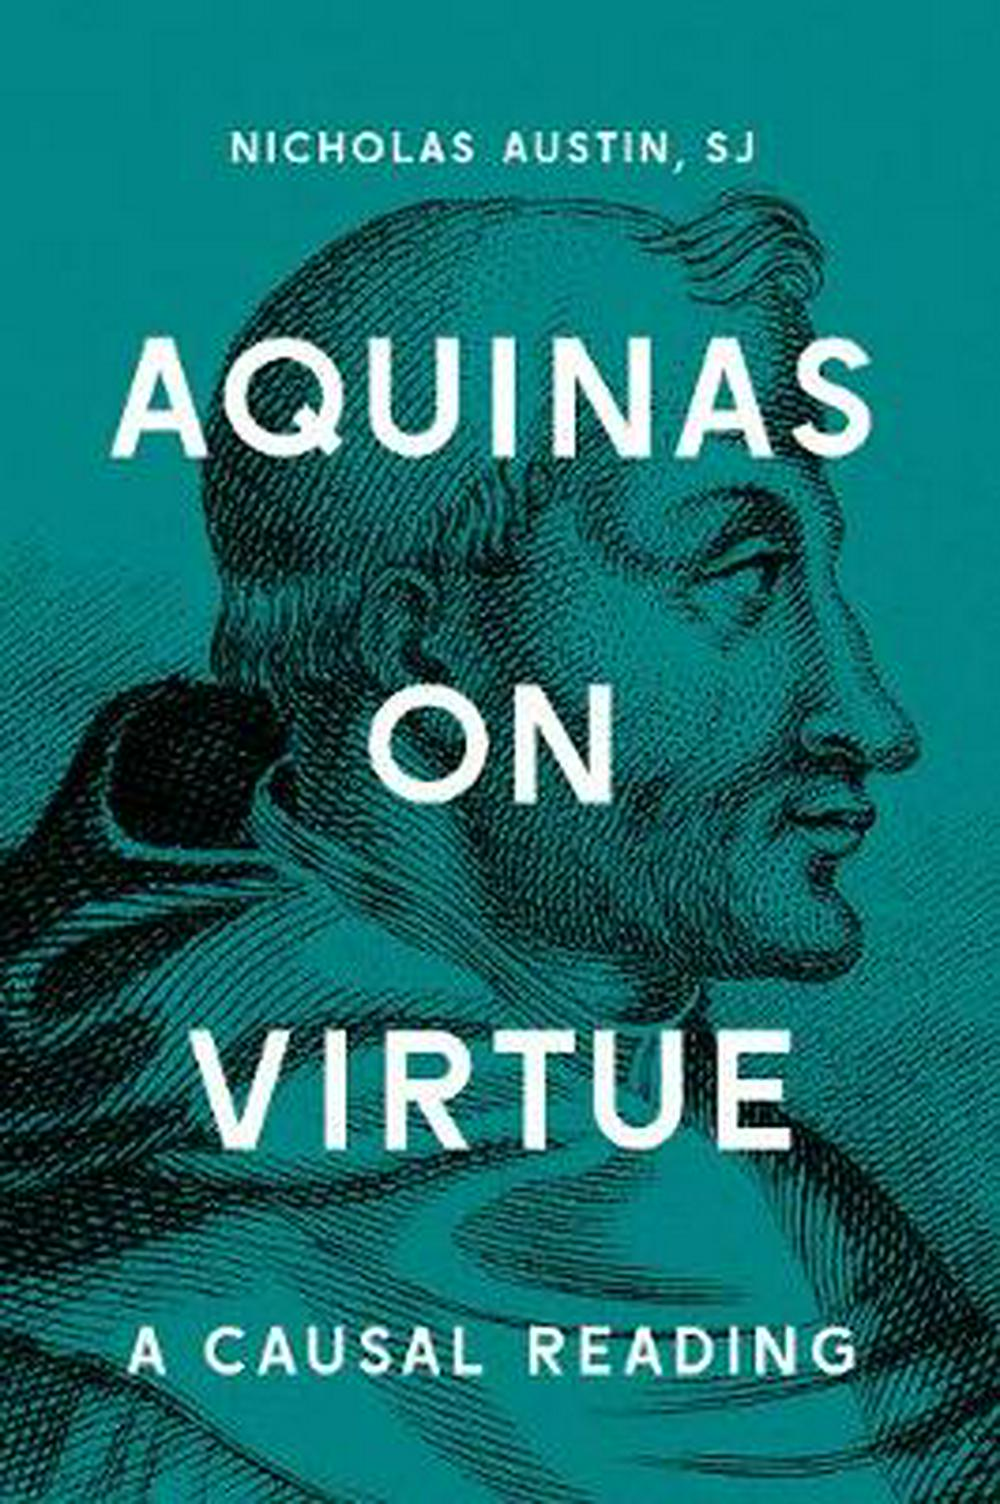 Aquinas on VirtueA Causal Reading